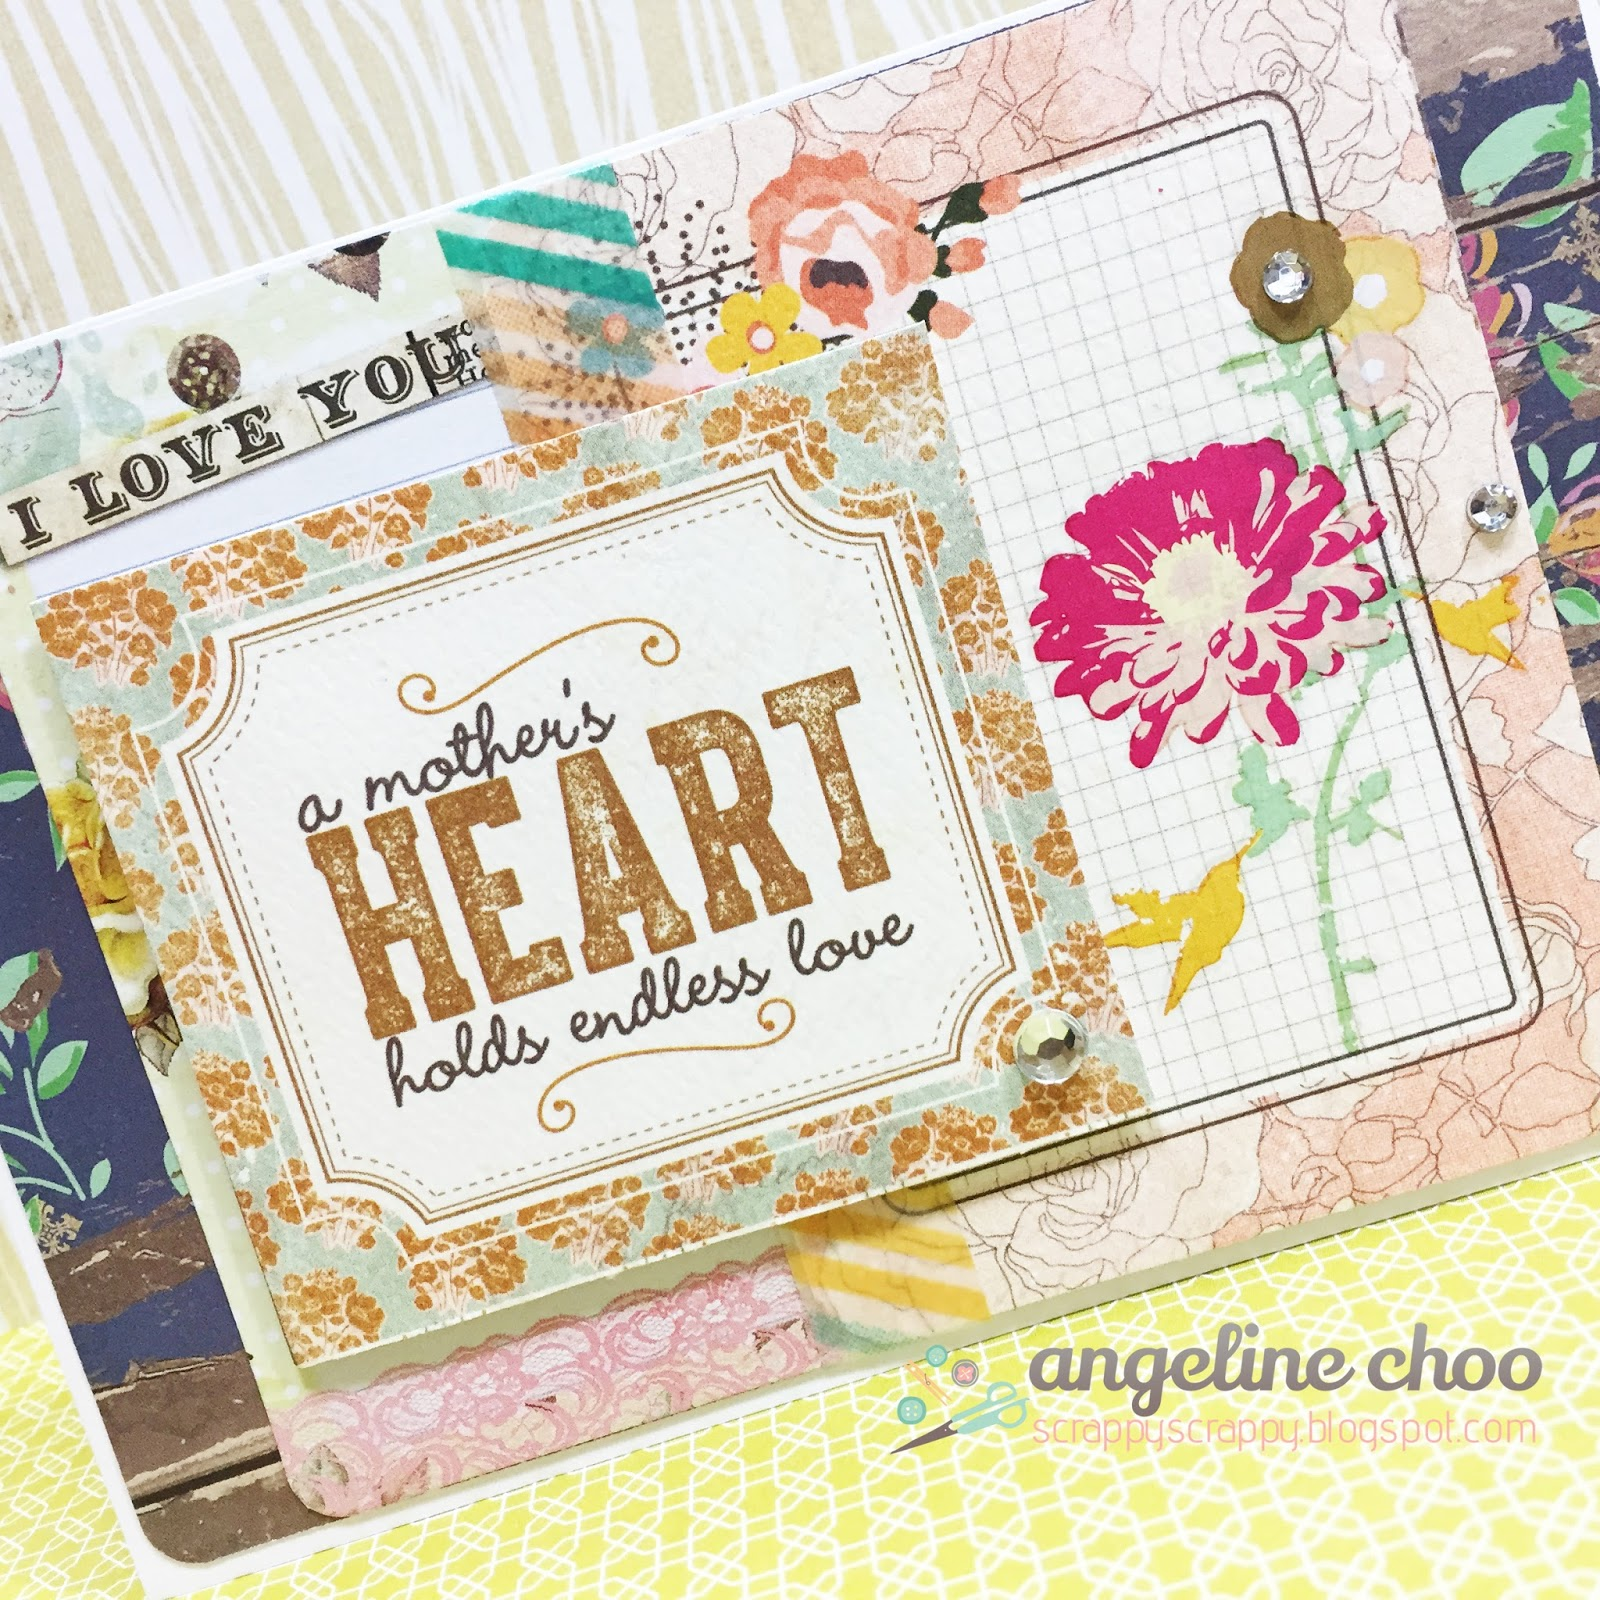 ScrappyScrappy: A mother's heart holds endless love #scrappyscrappy #mothersday #scrapncrop #card